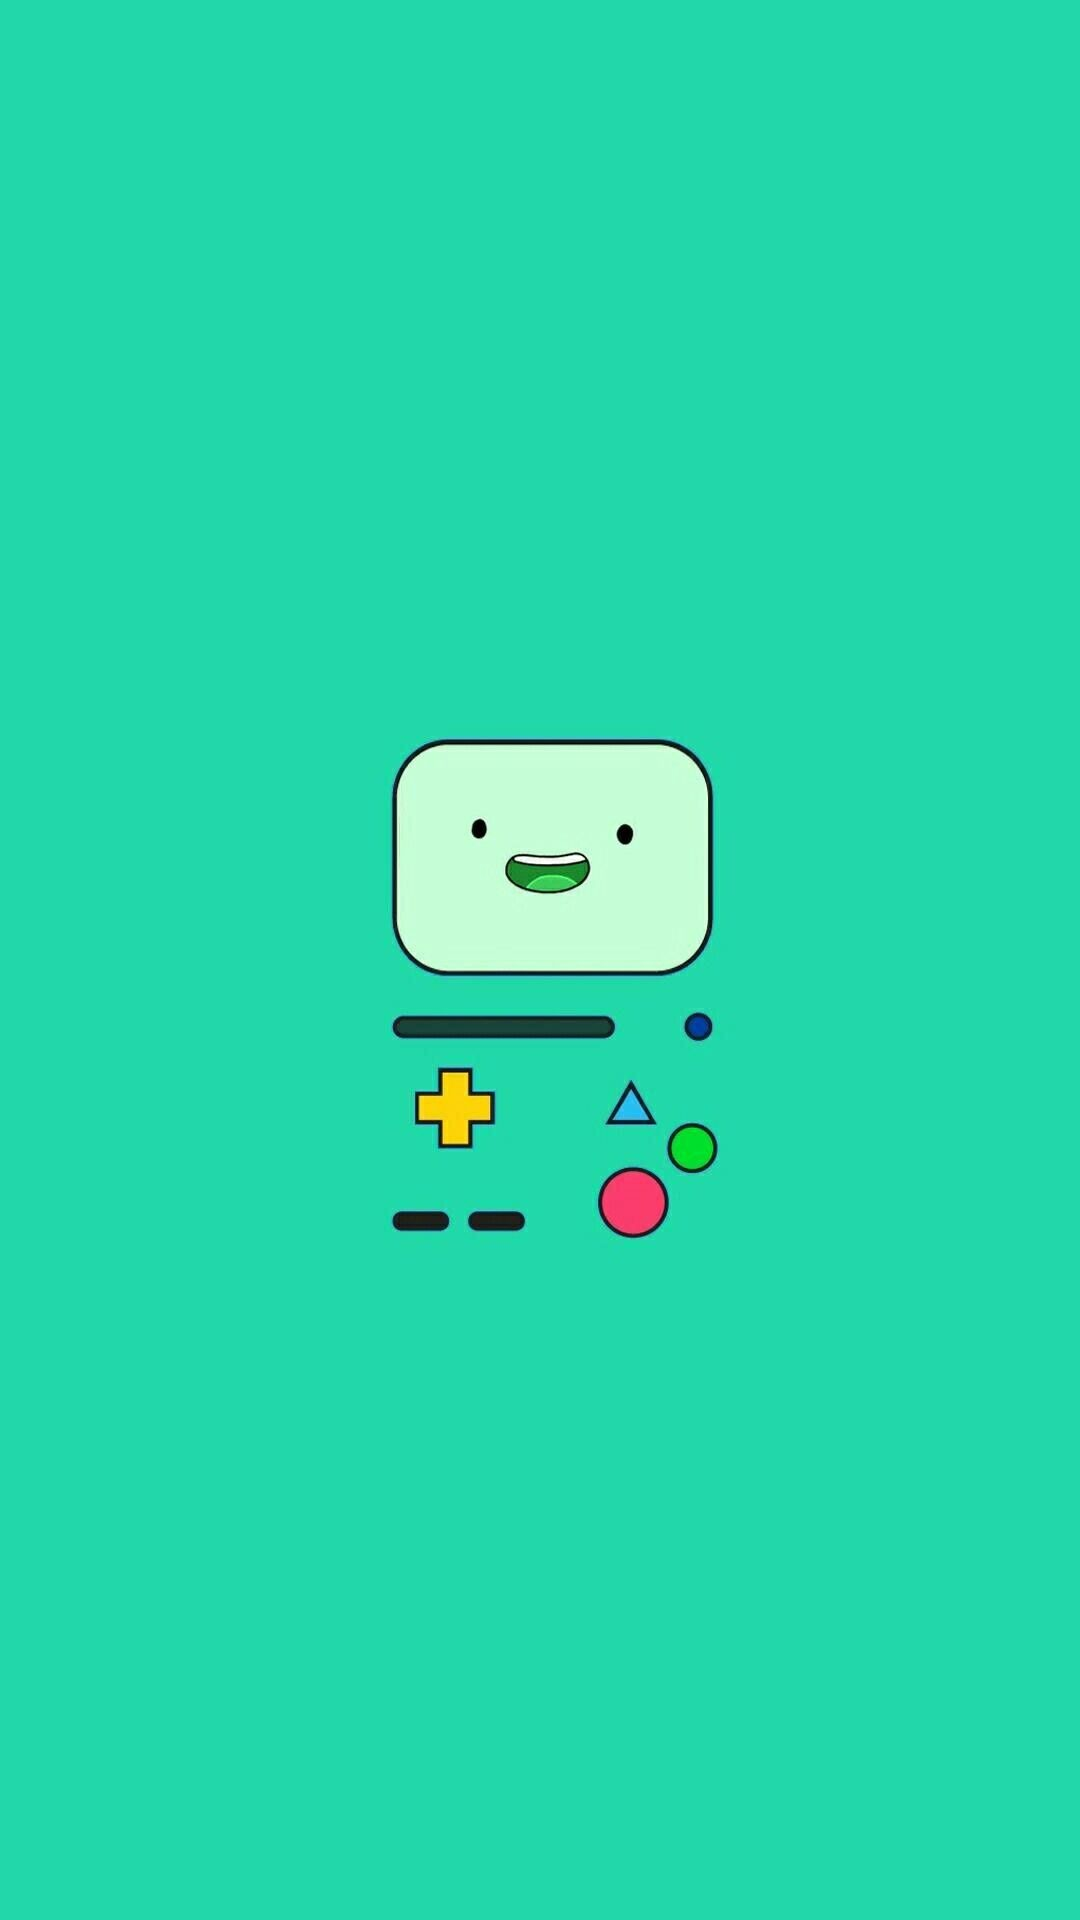 1080x1920 Cartoon Present, Best Iphone Wallpapers, Cute Wallpapers, Adventure Time  Episodes, Adventure Time